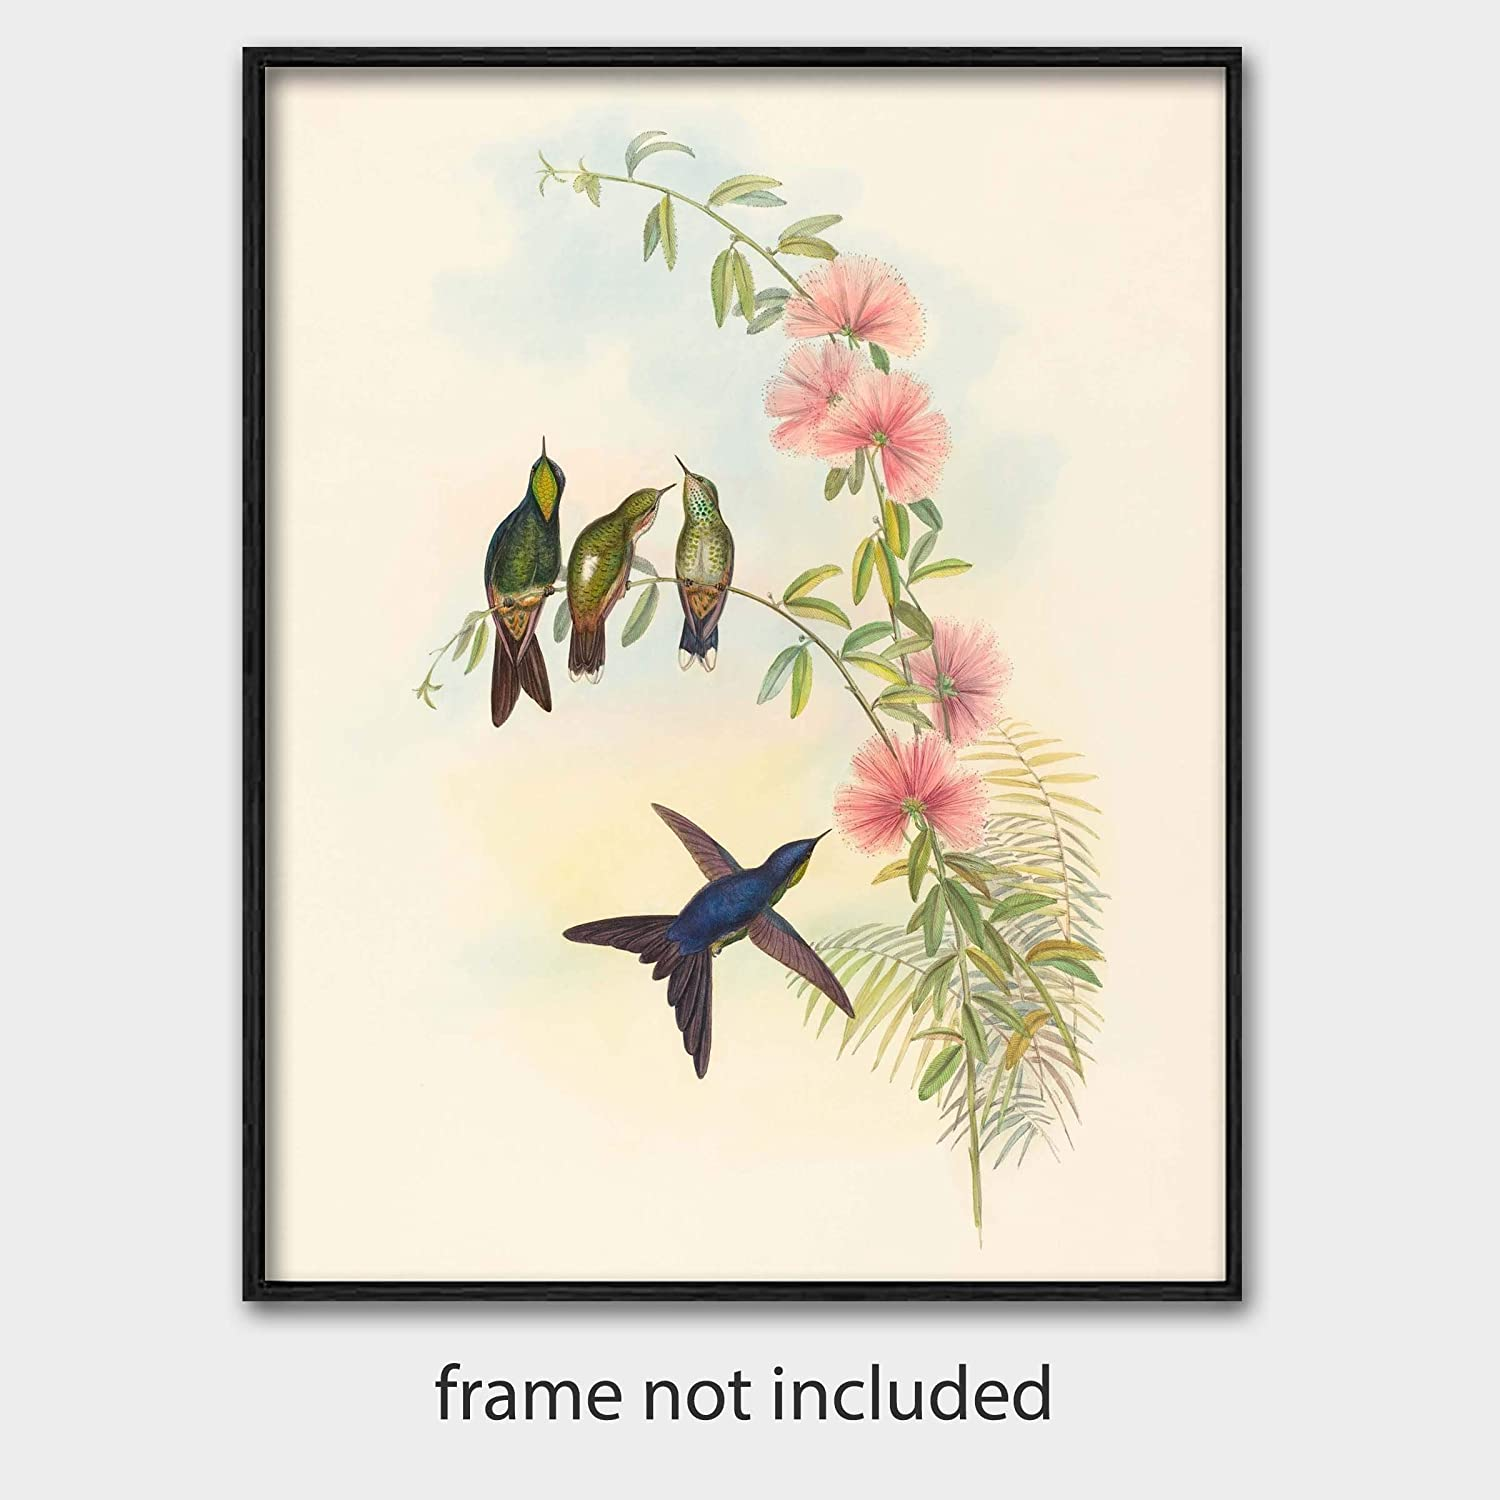 Humming Bird Home Decor Canvas Print choose your size.